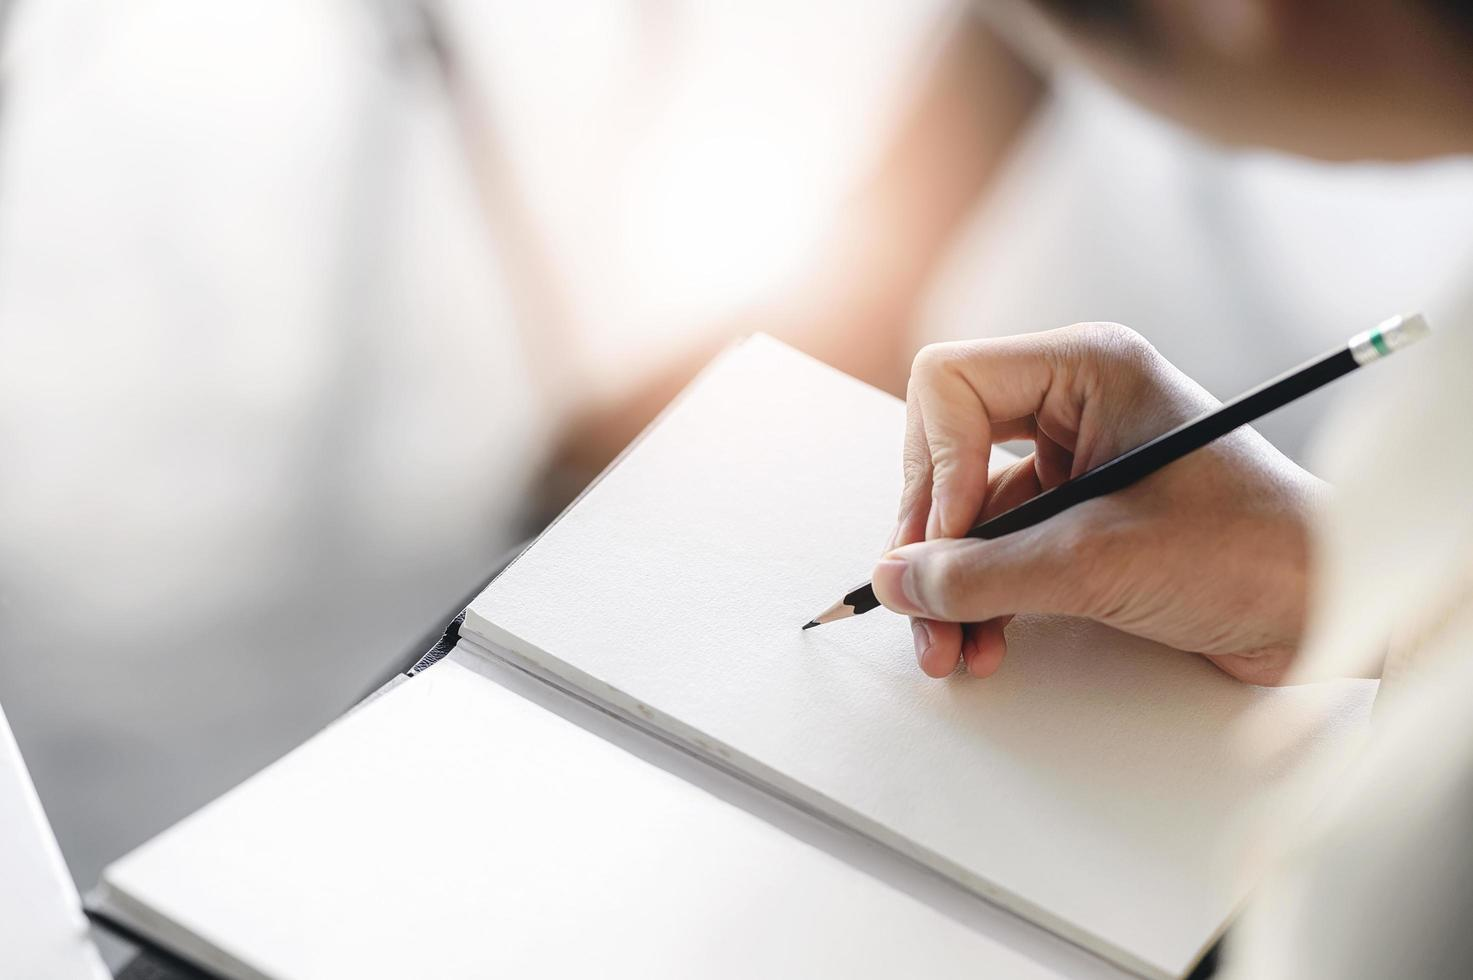 Man hand writes on notebook with pencil photo